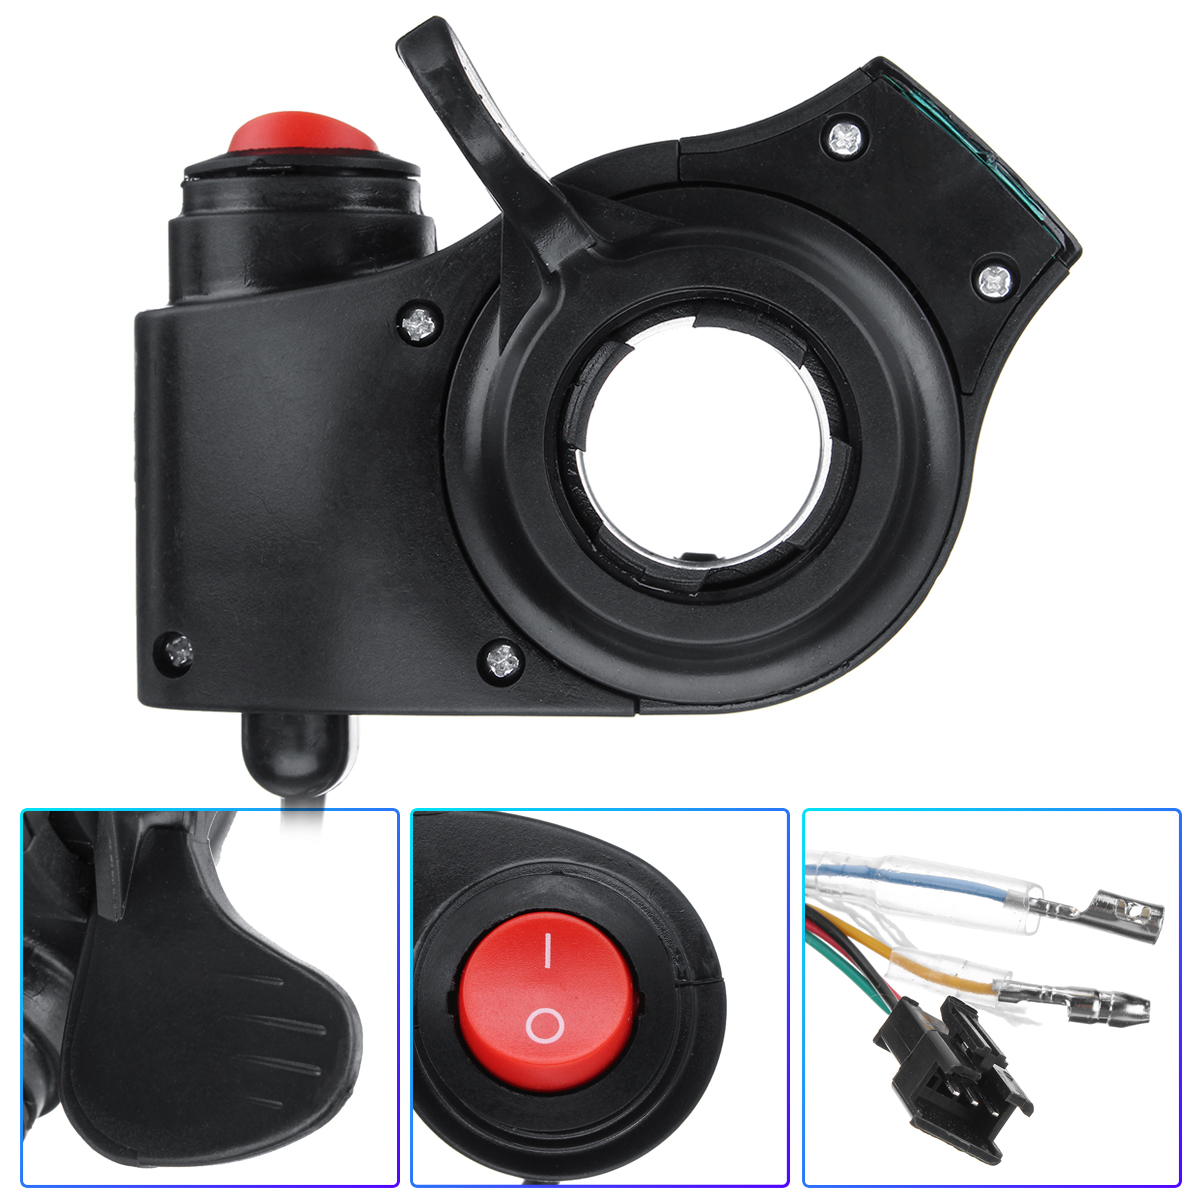 Thumb Throttle Electric Bike Scooter Key Knock with Power Switch LED Voltage Display